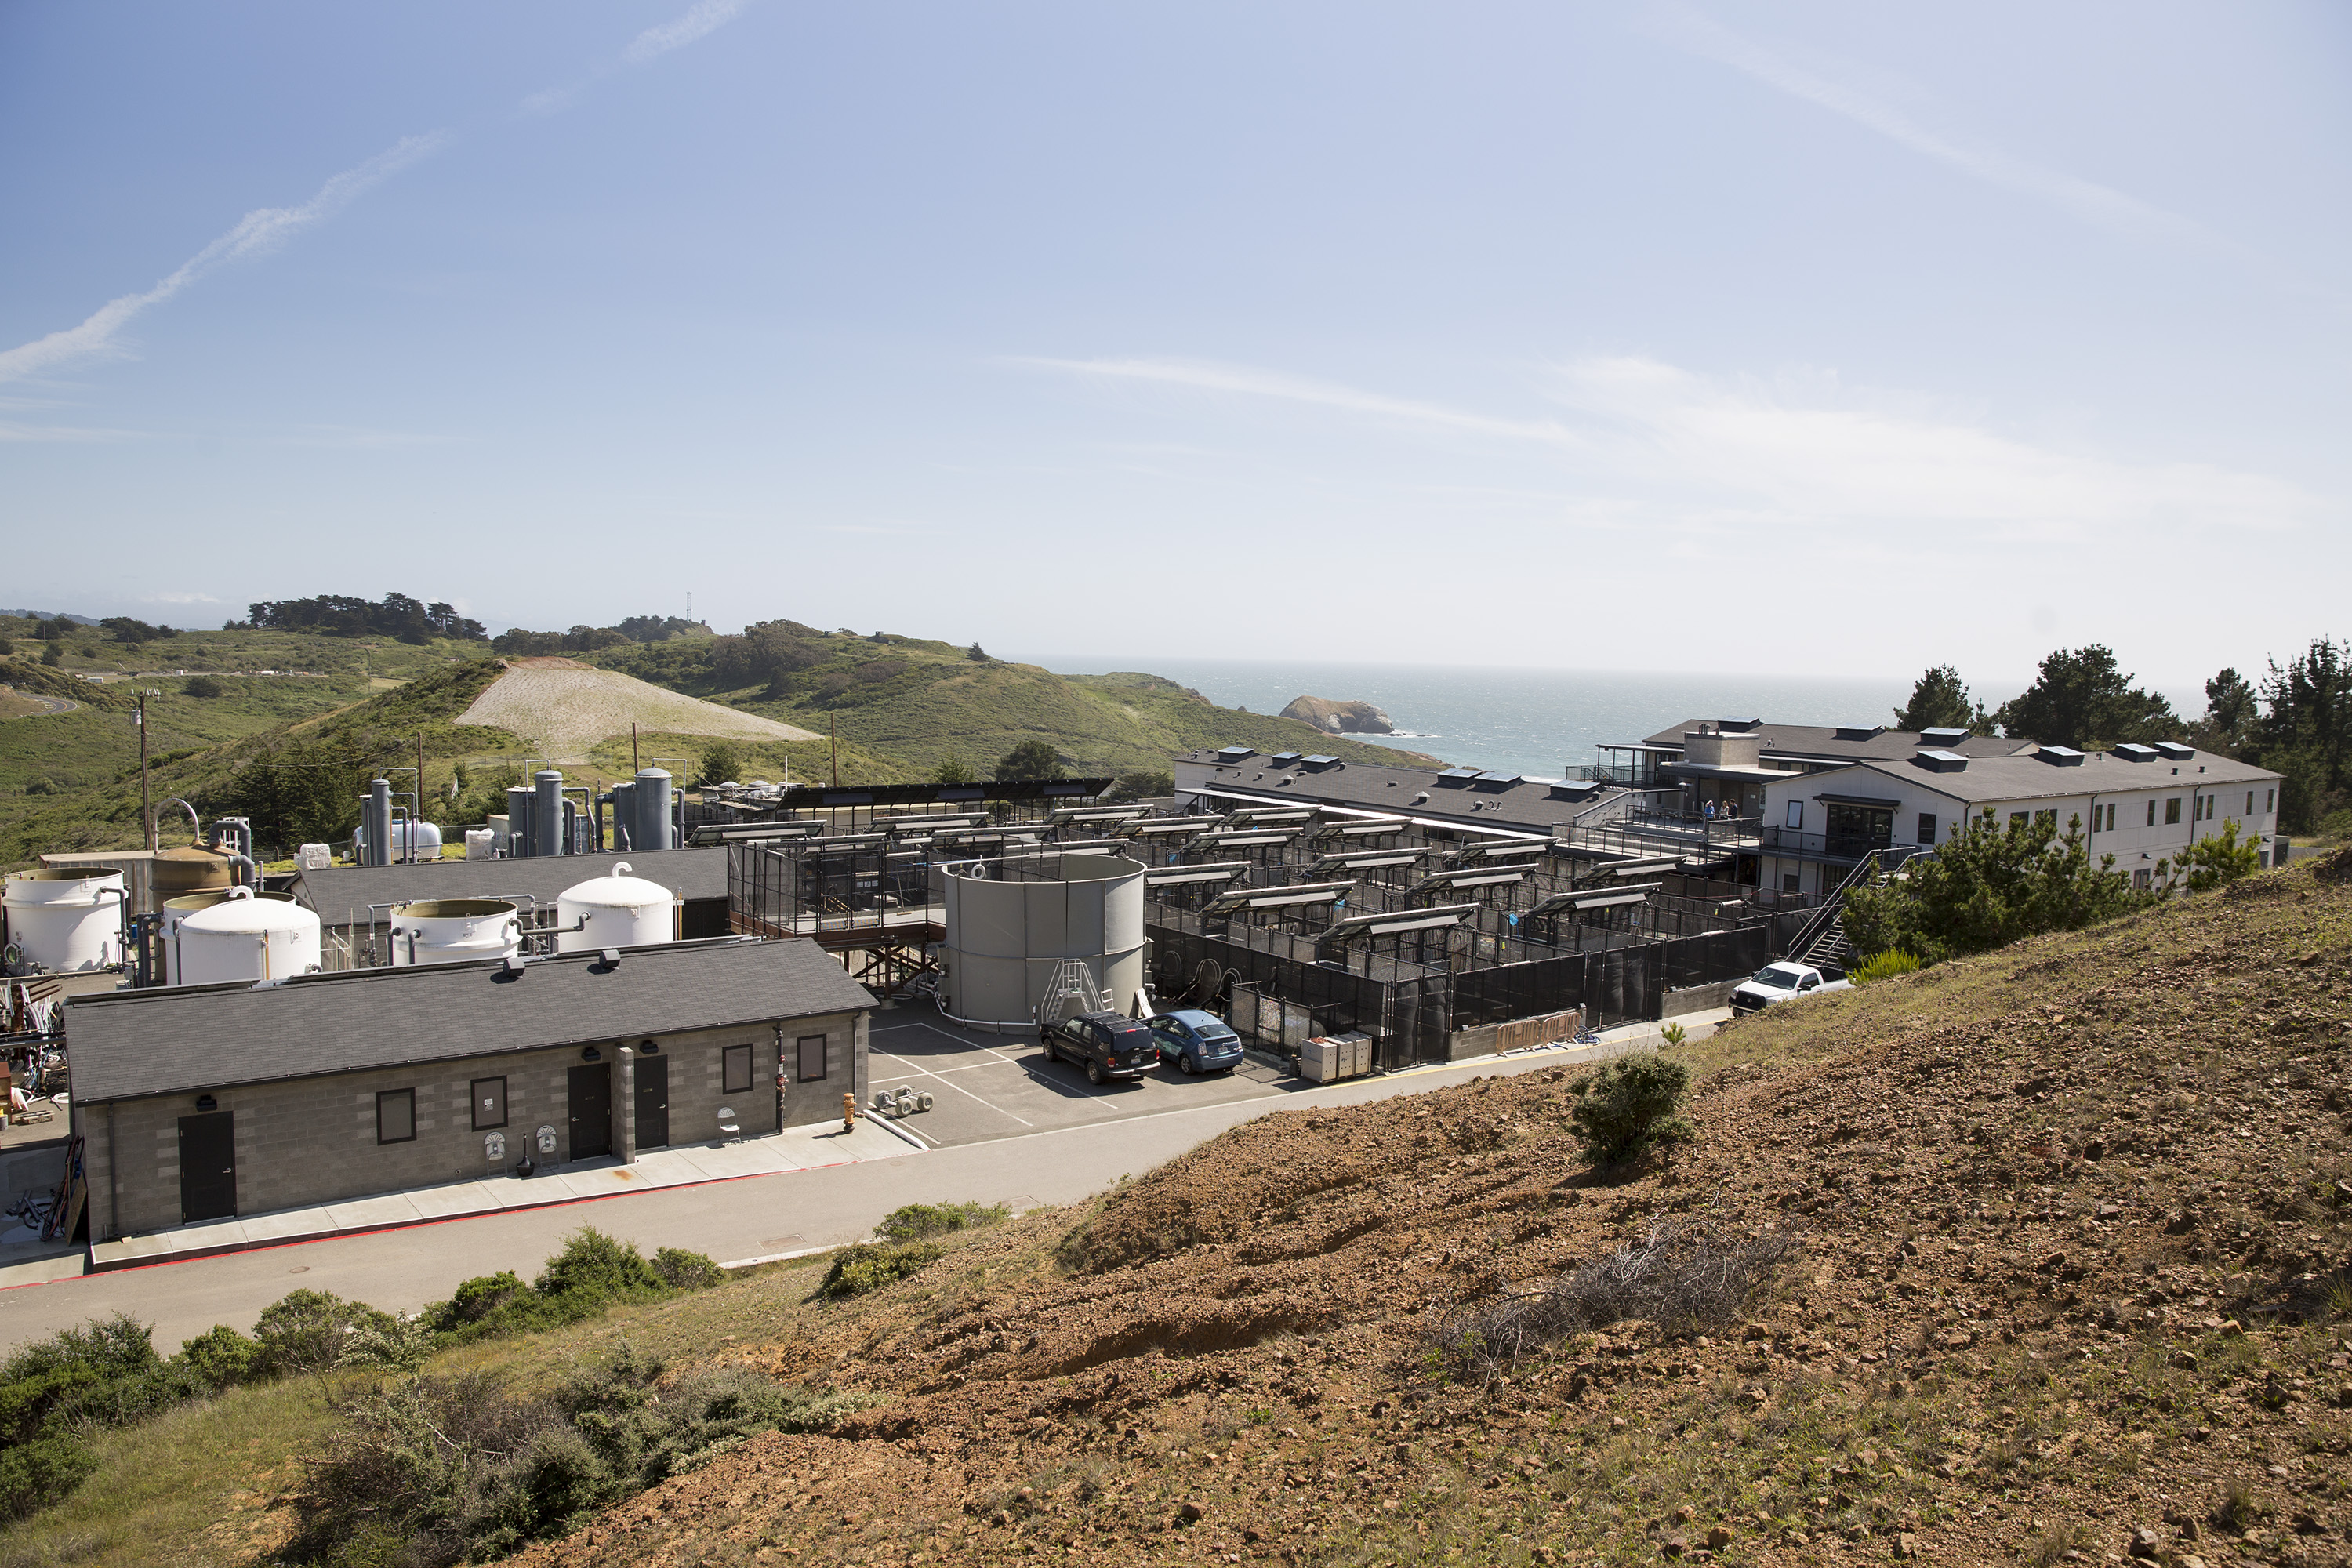 The Marine Mammal Center sits where the U.S. military once had a missile site outside San Francisco, in the Marin Headlands, Calif., May 9, 2014.